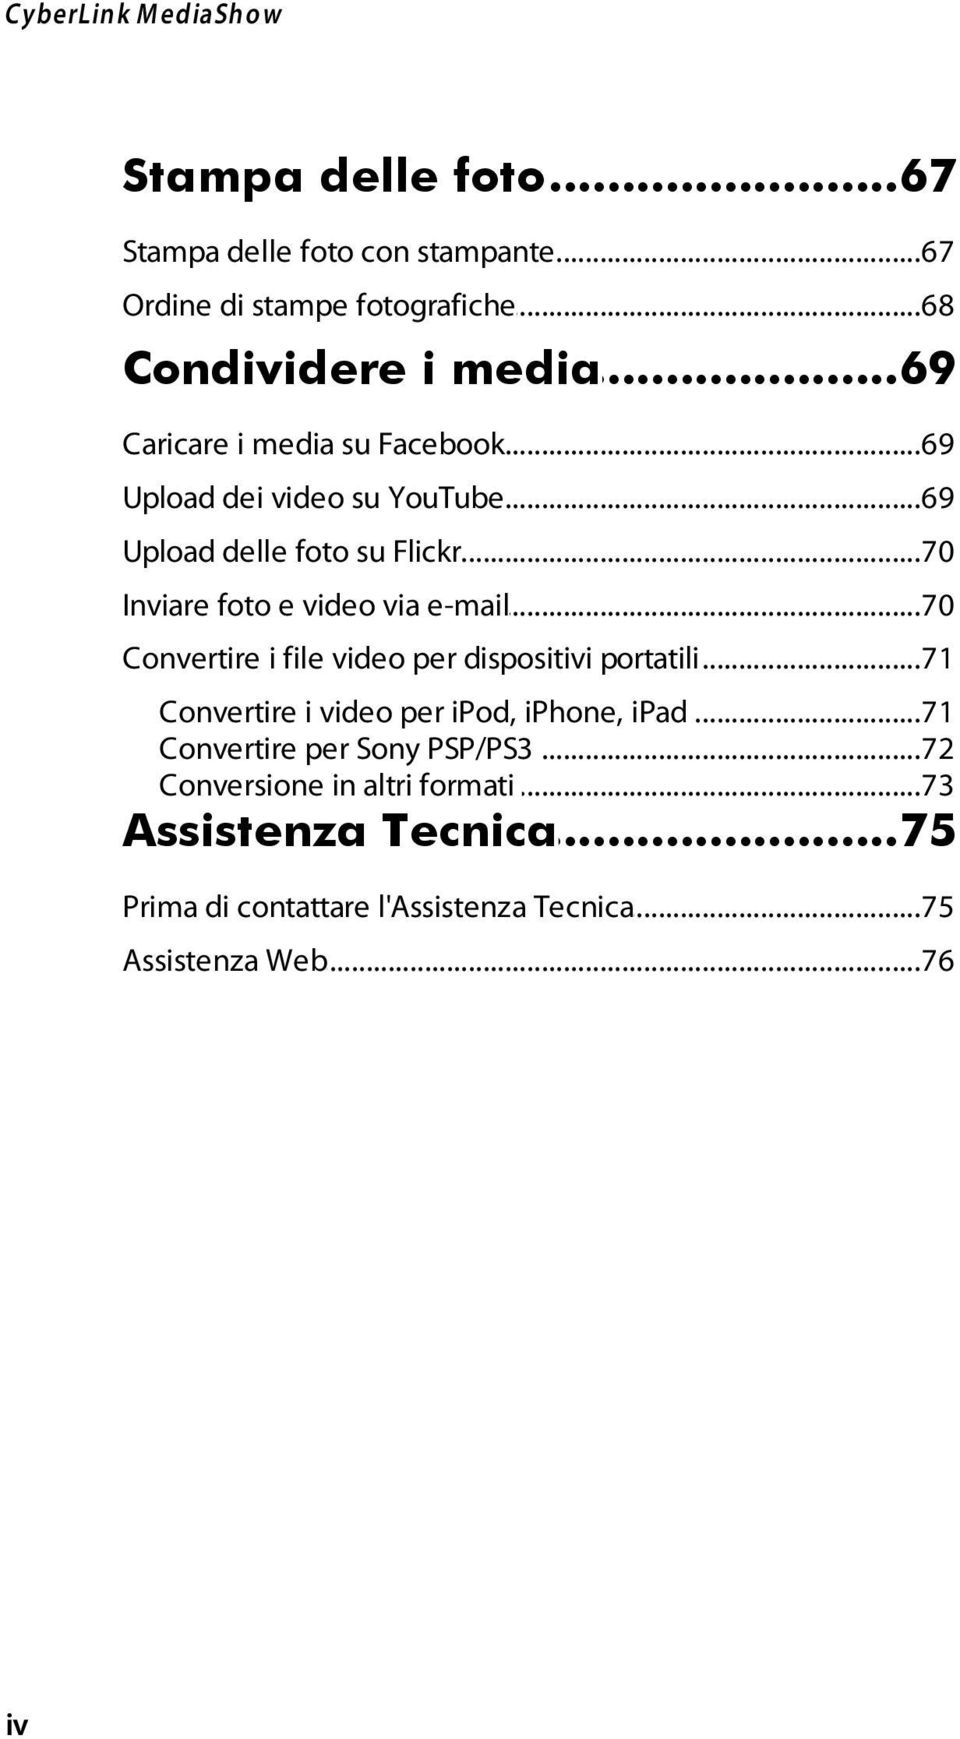 ..70 e video via e-mail Convertire...71 i file video per dispositivi portatili Convertire...71 i video per ipod, iphone, ipad Convertire.